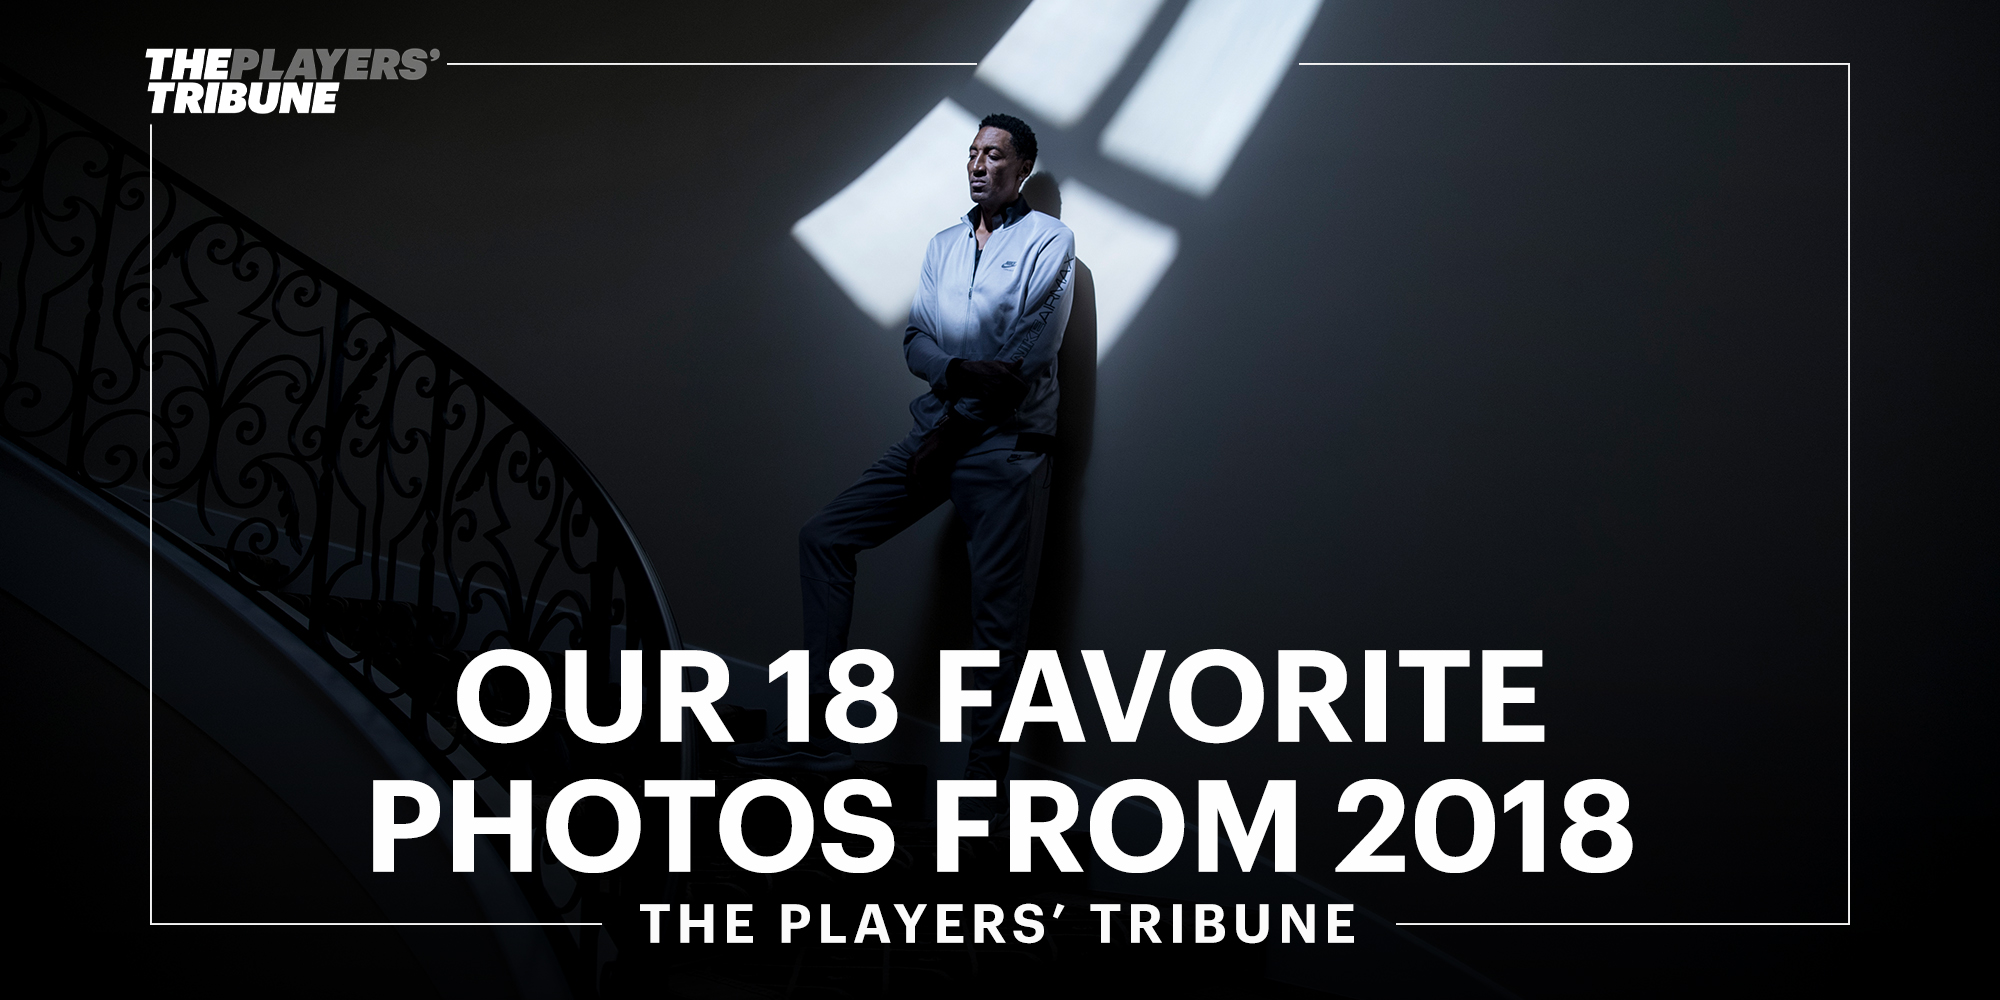 Our 18 Favorite Photos From 2018